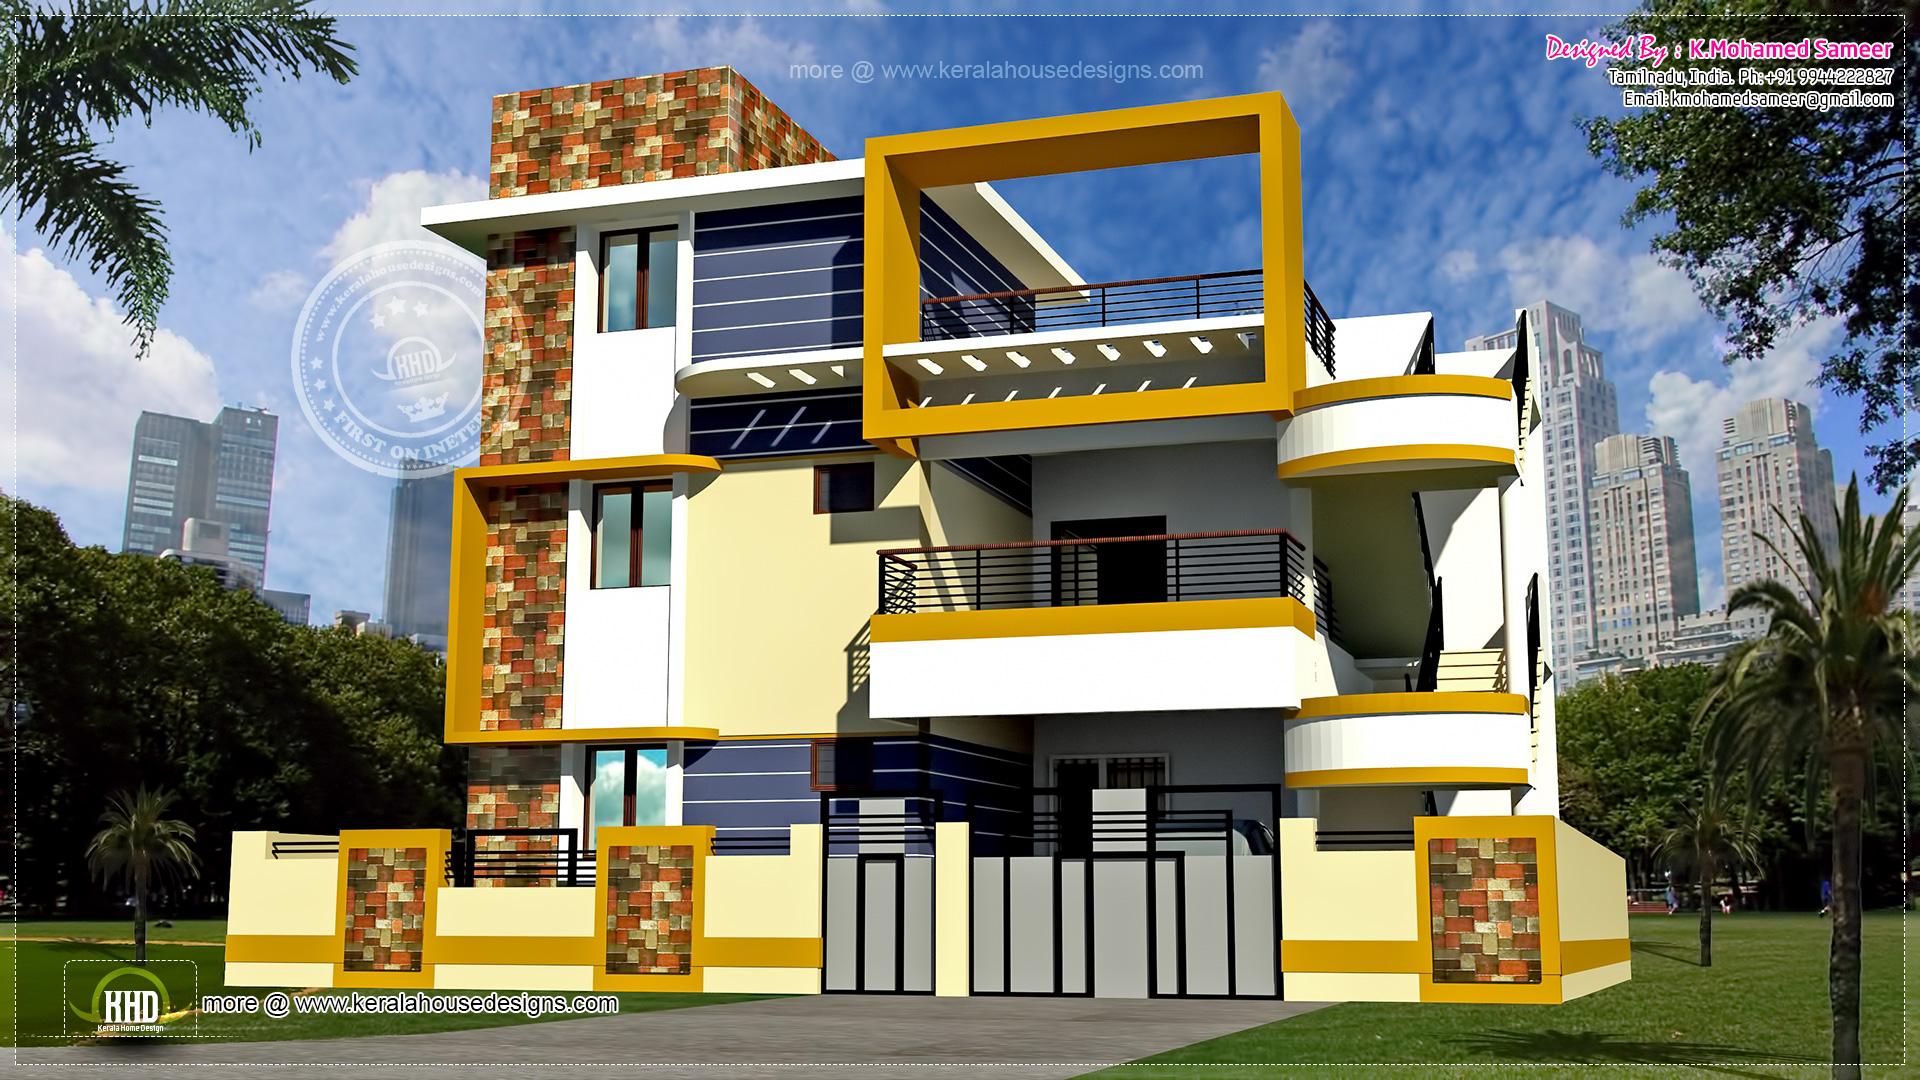 Modern 3 floor tamilnadu house design kerala home design for Second floor house plans indian pattern